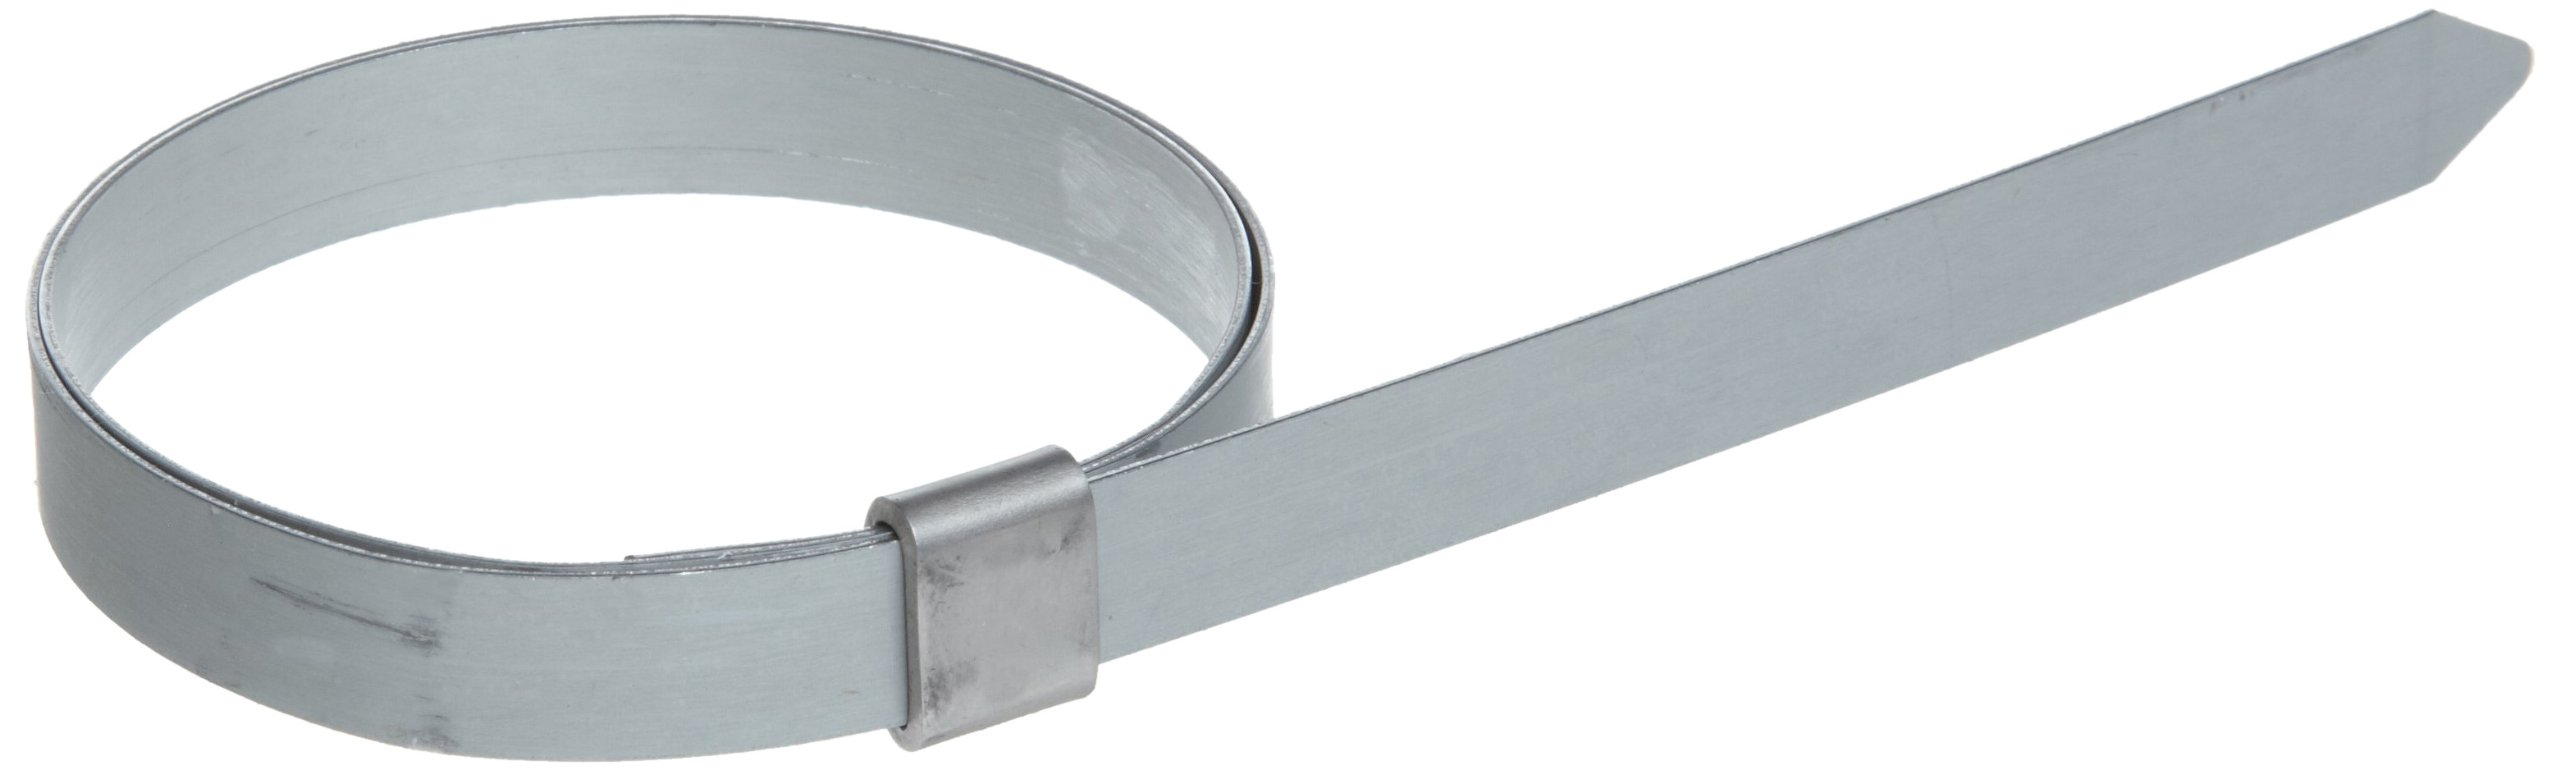 BAND-IT JS3459 Junior 3/8'' Wide x 0.025'' Thick, 2'' Diameter, Galvanized Carbon Steel Smooth I.D. Clamp (100 Per Box)